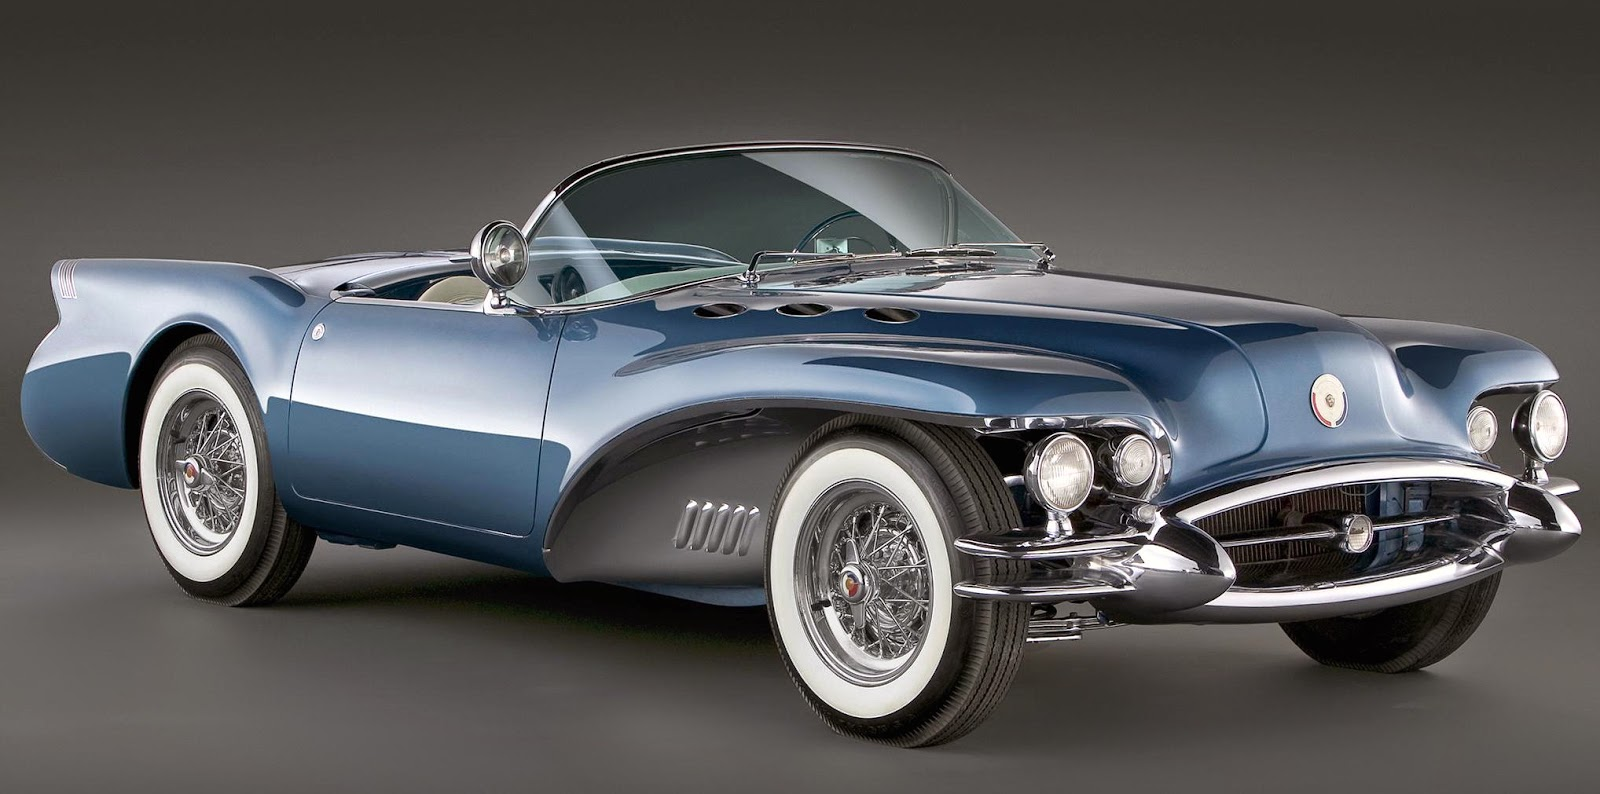 car style critic: what were they thinking?: 1950s concepts